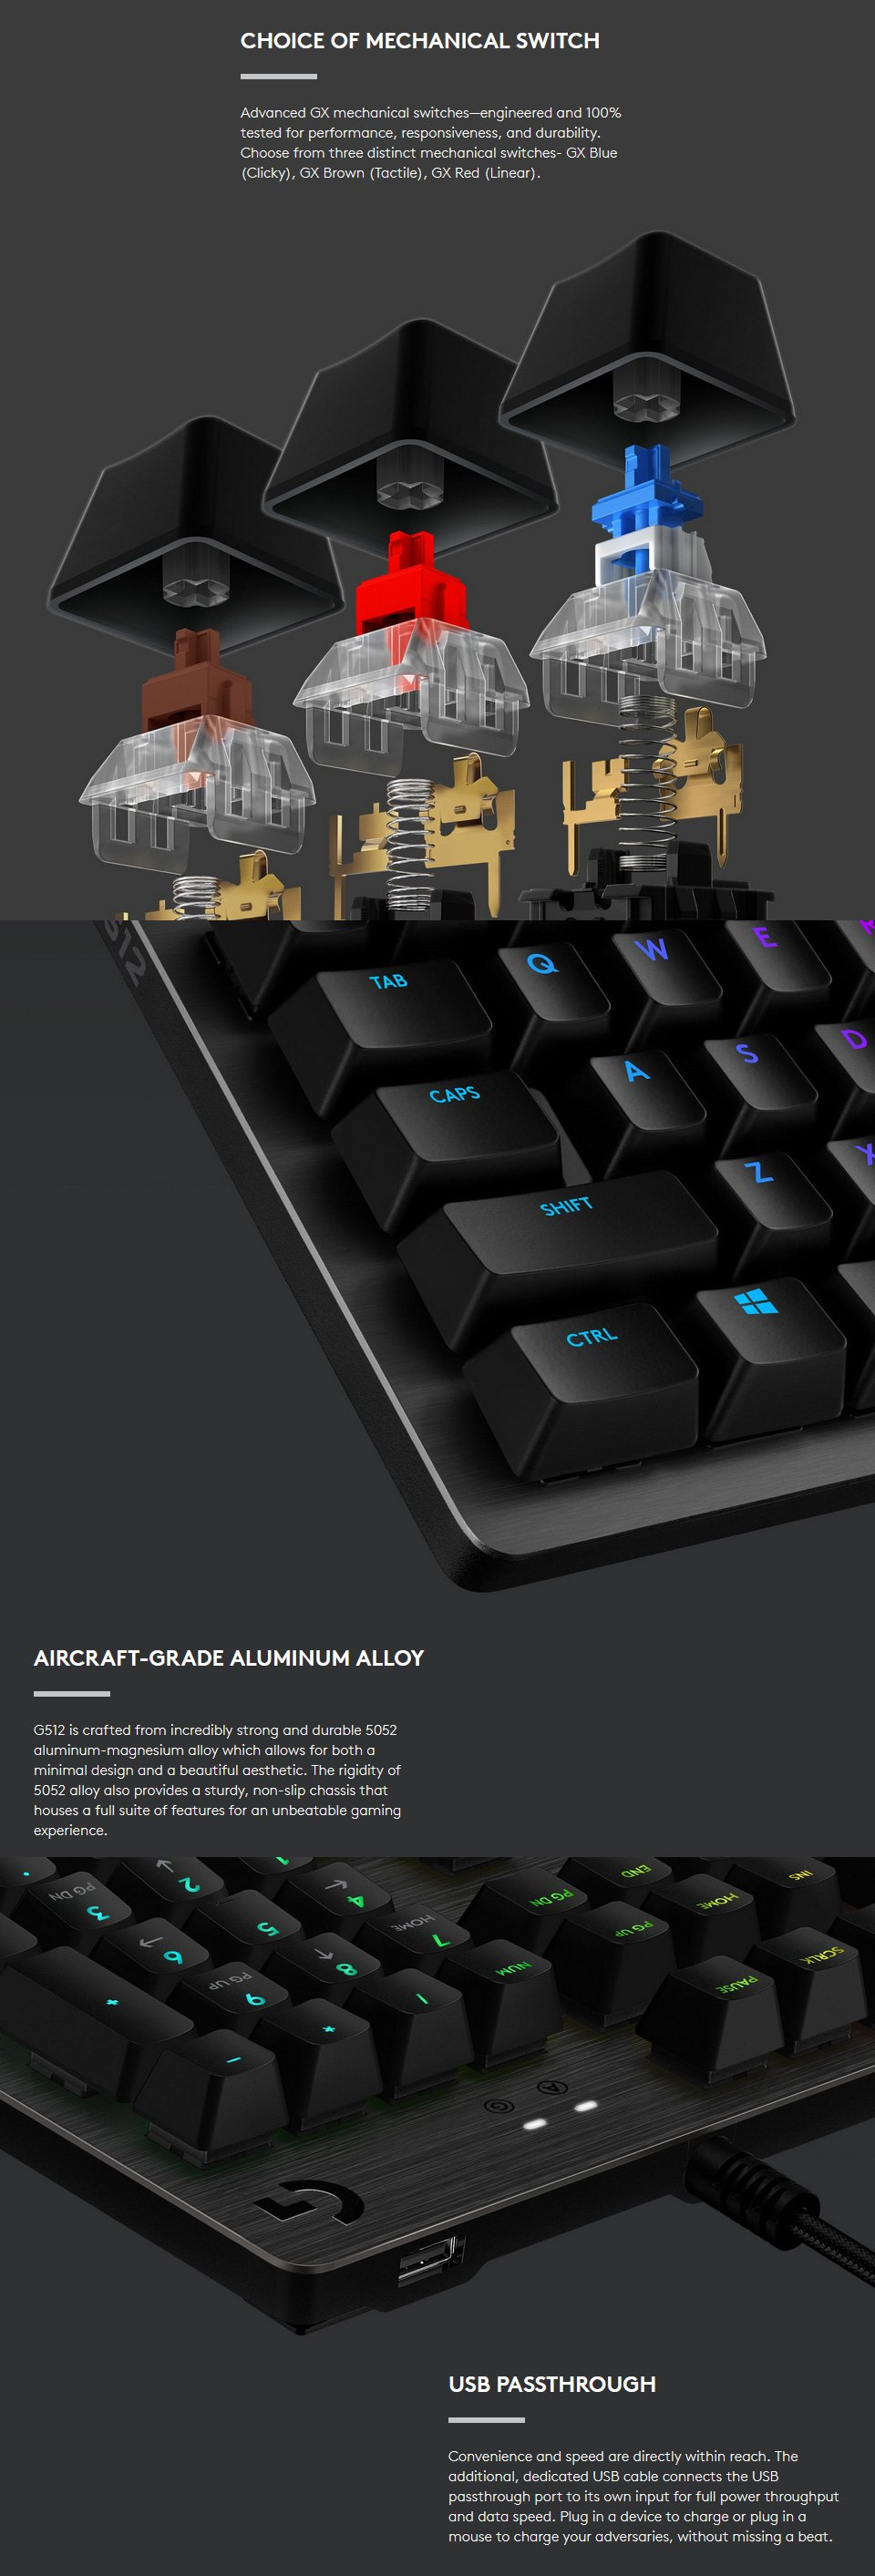 Logitech G512 Carbon RGB Mechanical Keyboard GX Brown features 2